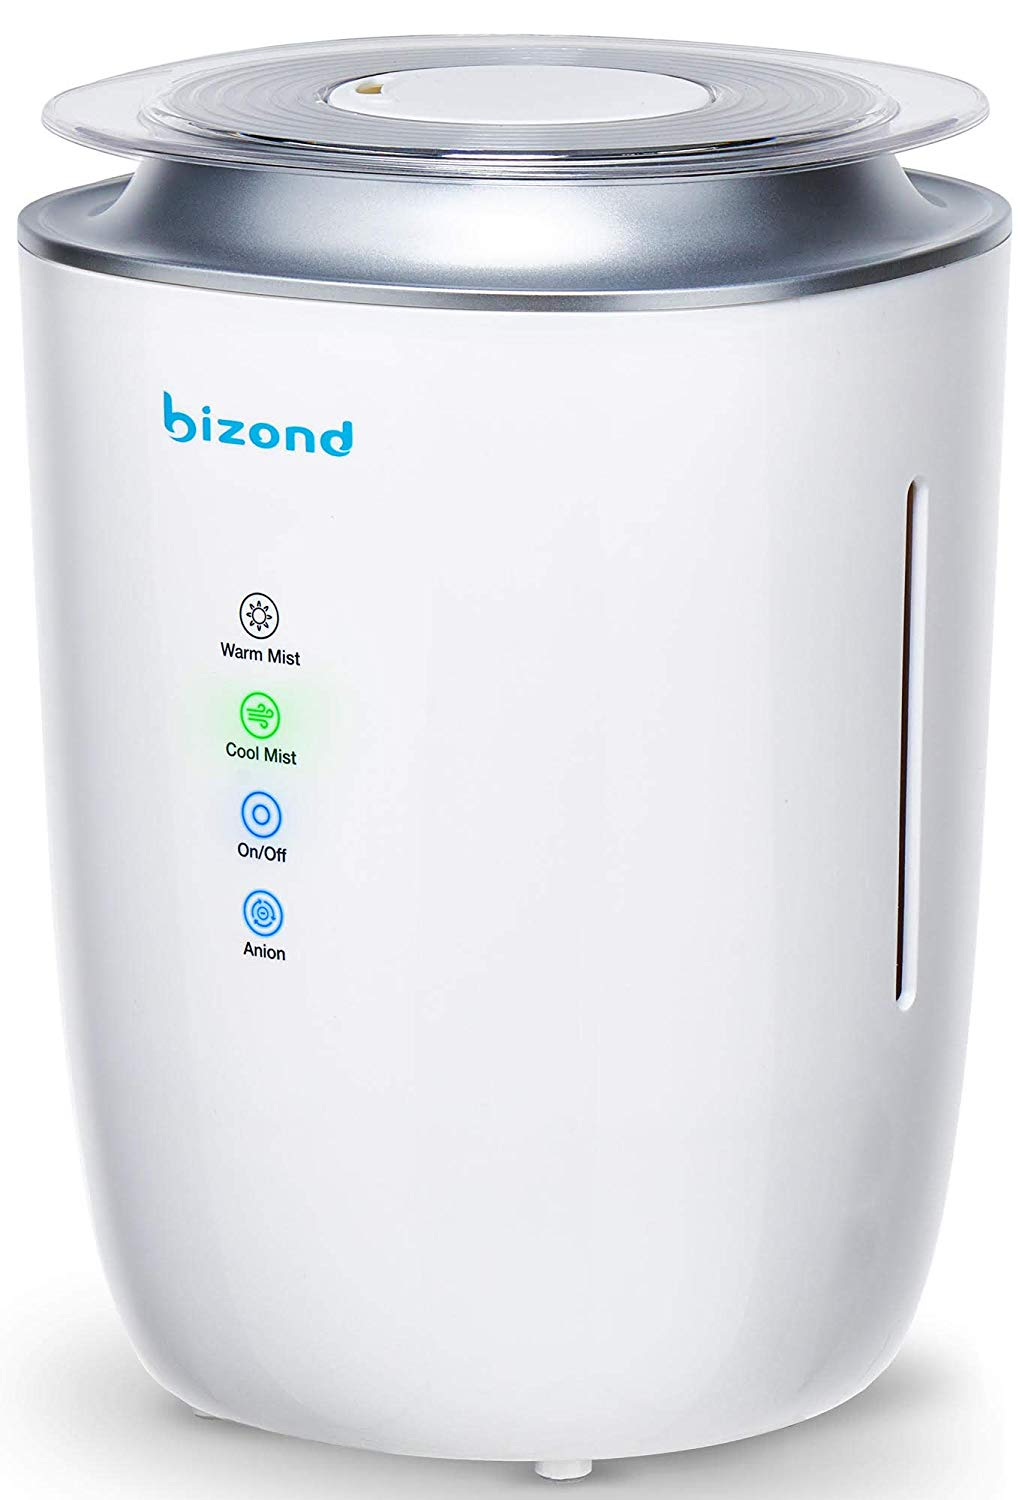 Bizond Ultrasonic Warm And Cool Mist Humidifier Best For Apartment